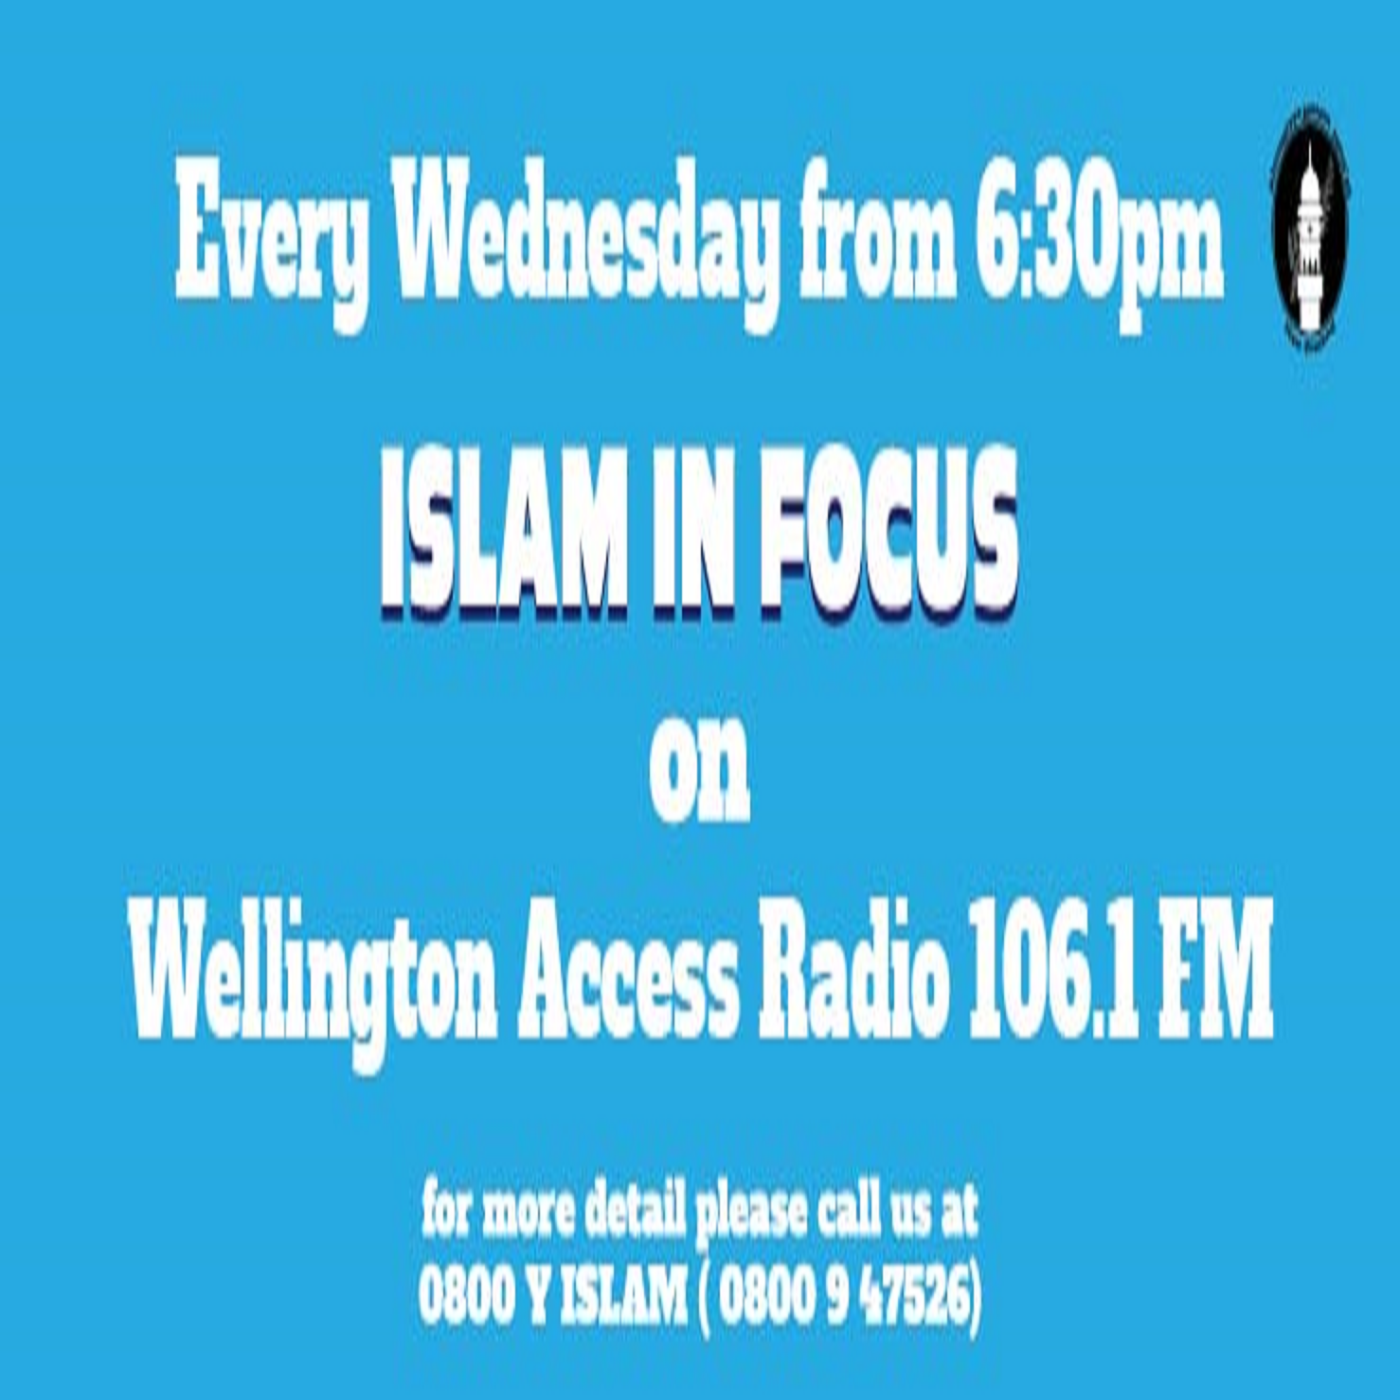 https://cdn.accessradio.org/StationFolder/war/Images/Islam in Focus Wellington.png